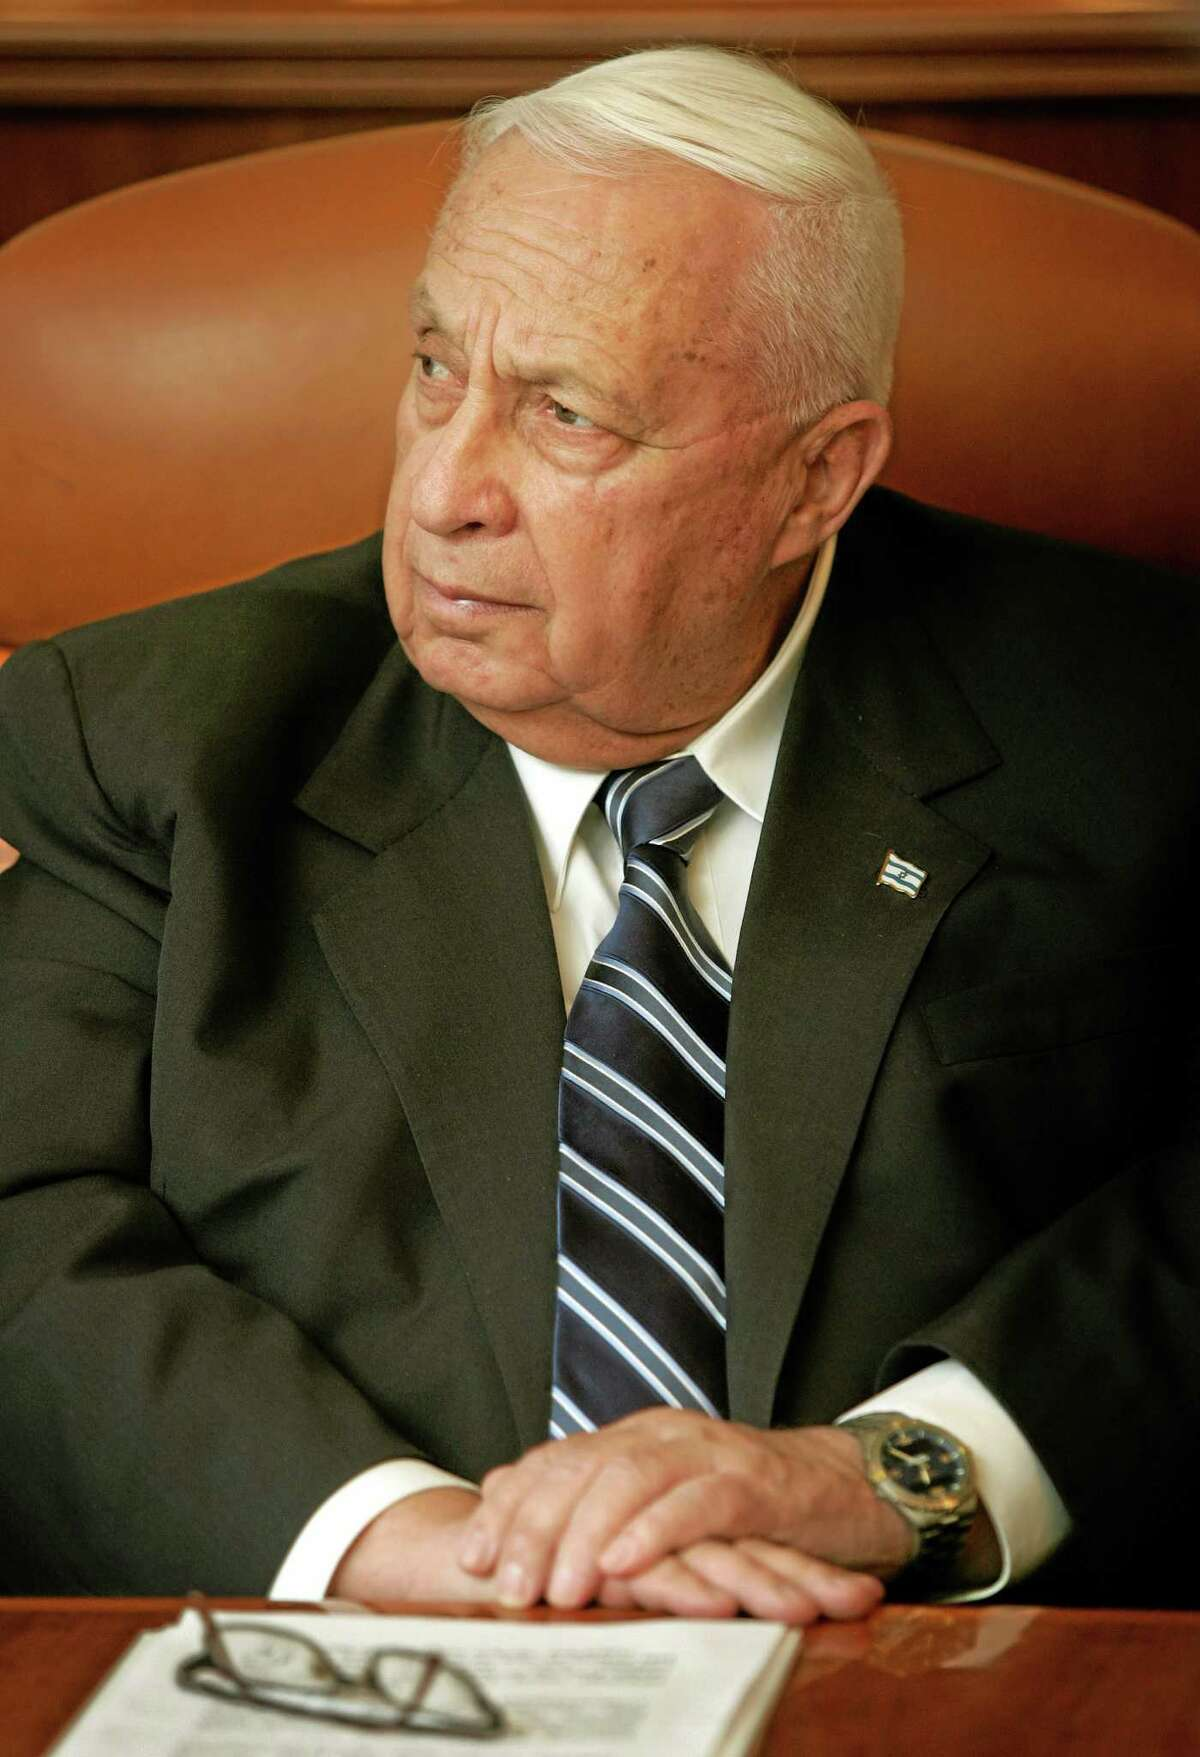 FILE - In this Dec. 12, 2005, photo file photo, Israeli Prime Minster Ariel Sharon attends a meeting at his office in Jerusalem. Sharon, the hard-charging Israeli general and prime minister who was admired and hated for his battlefield exploits and ambitions to reshape the Middle East, died Saturday, Jan. 11, 2014. He was 85. (AP Photo/Oded Balilty, File)